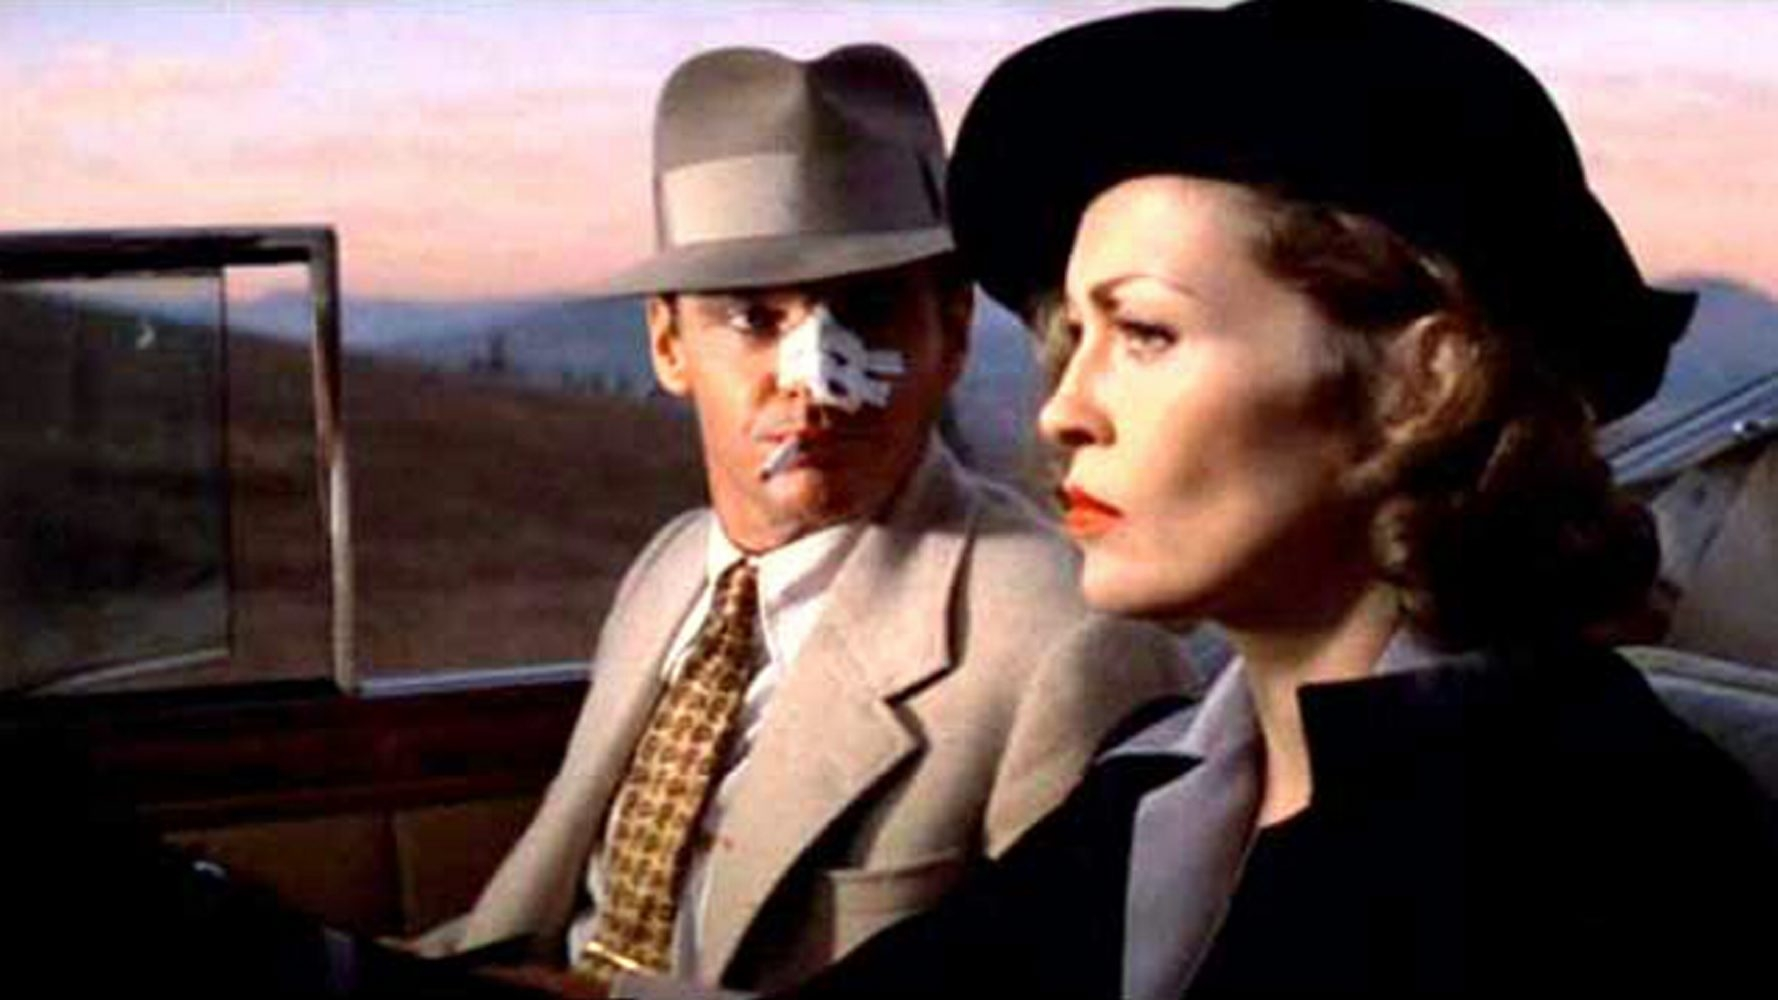 """Jack Nicholson and Faye Dunaway star in """"Chinatown"""" showing at the Screening Room Cinema Cafe."""